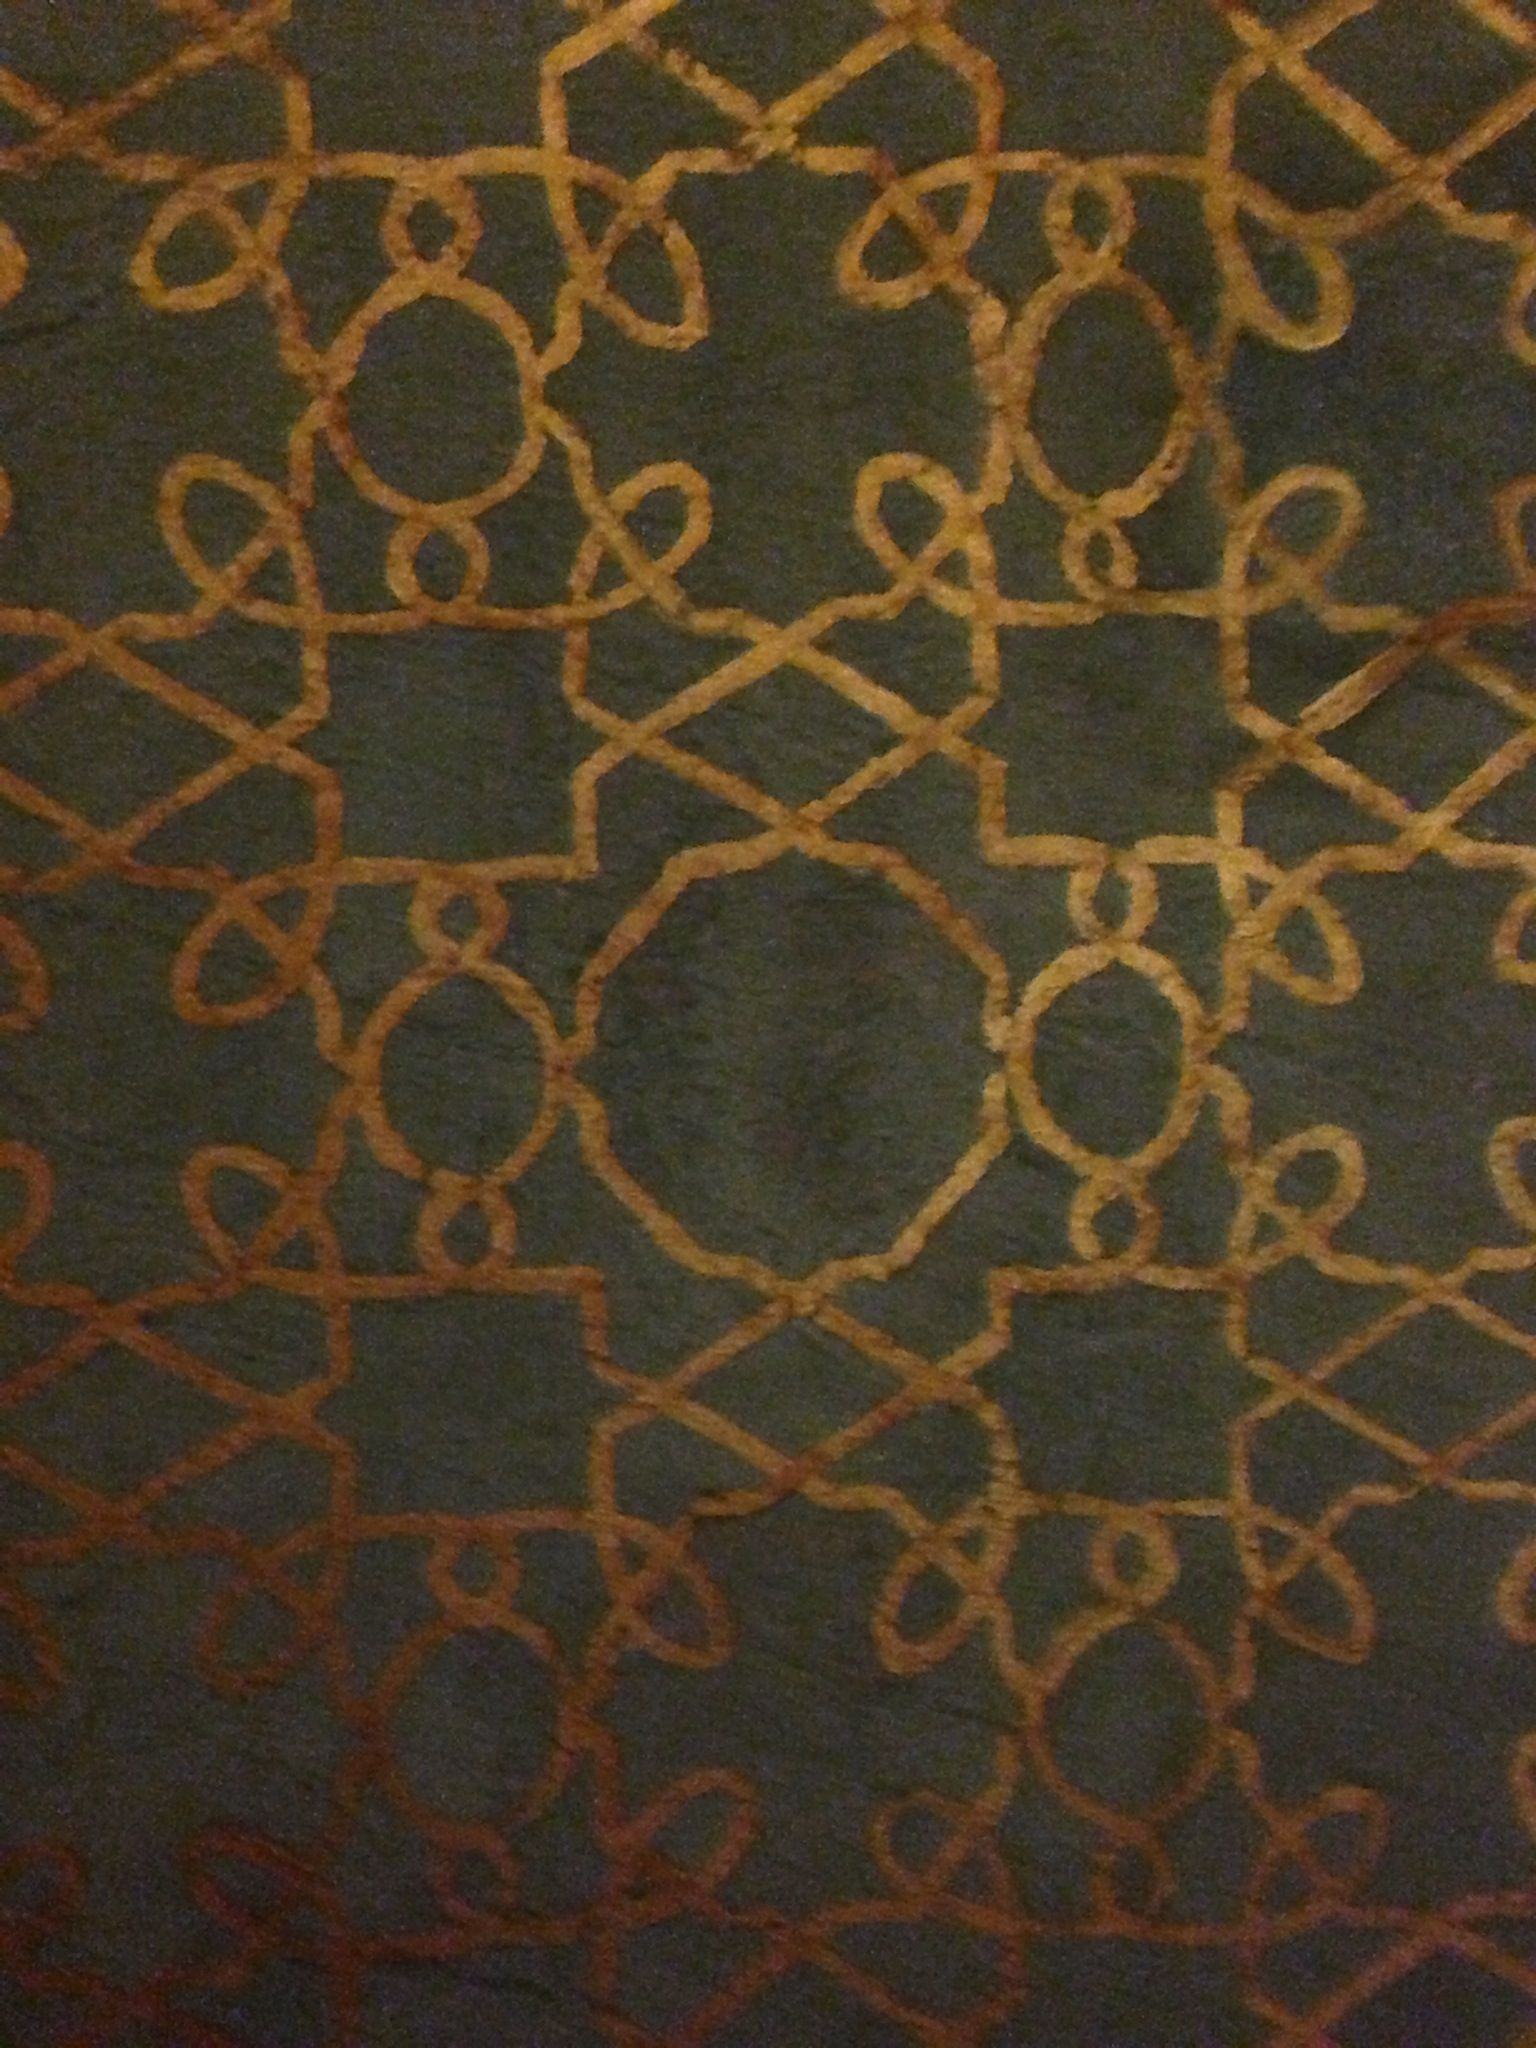 Floor tiles the vatican rome patterns pinterest vatican rome floor tiles the vatican rome dailygadgetfo Image collections